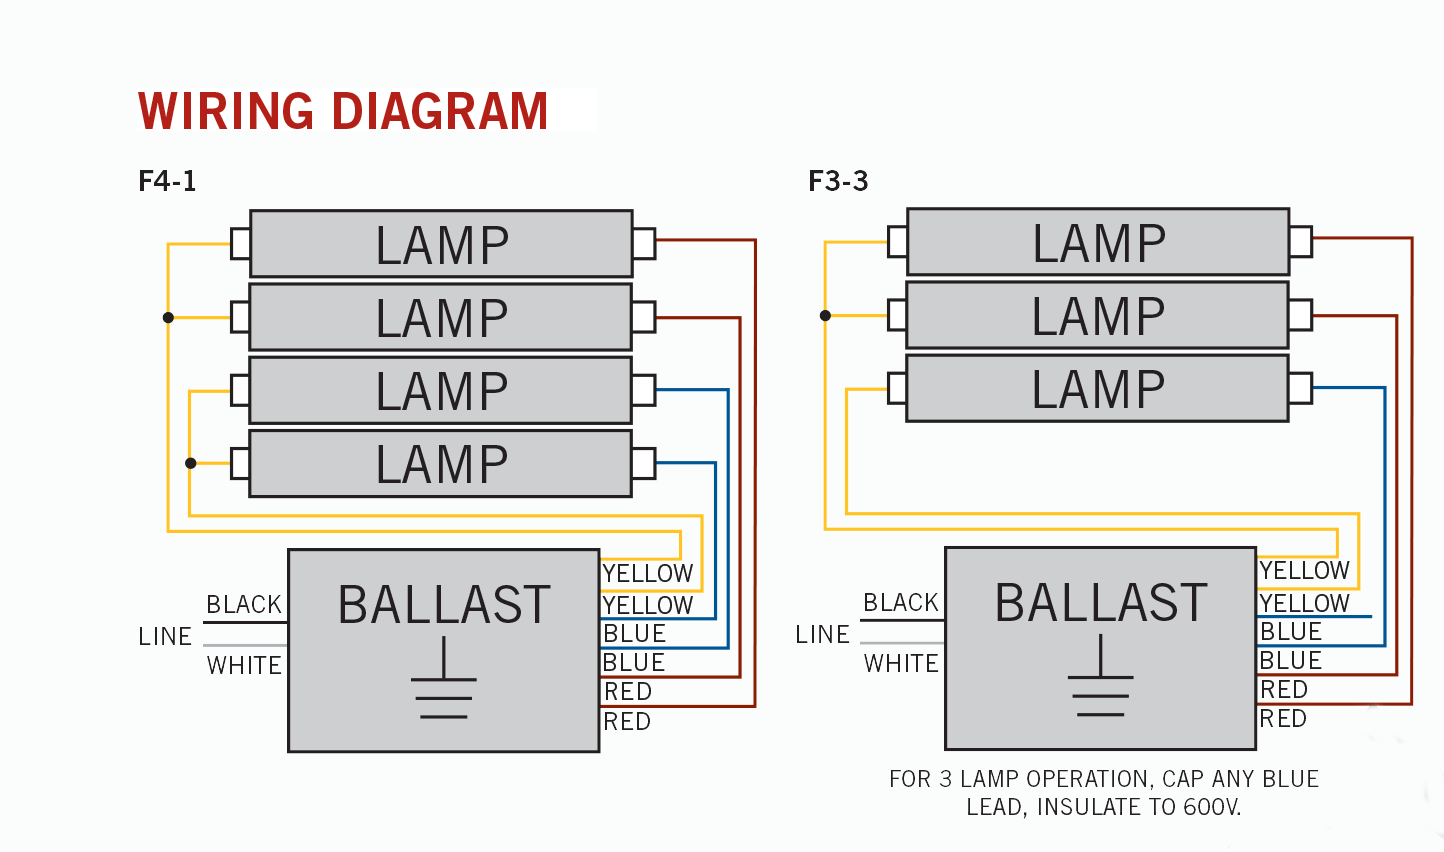 4 Lamp Led Wiring Diagram | Wiring Diagram  Lamp Ft T Wiring Diagram on